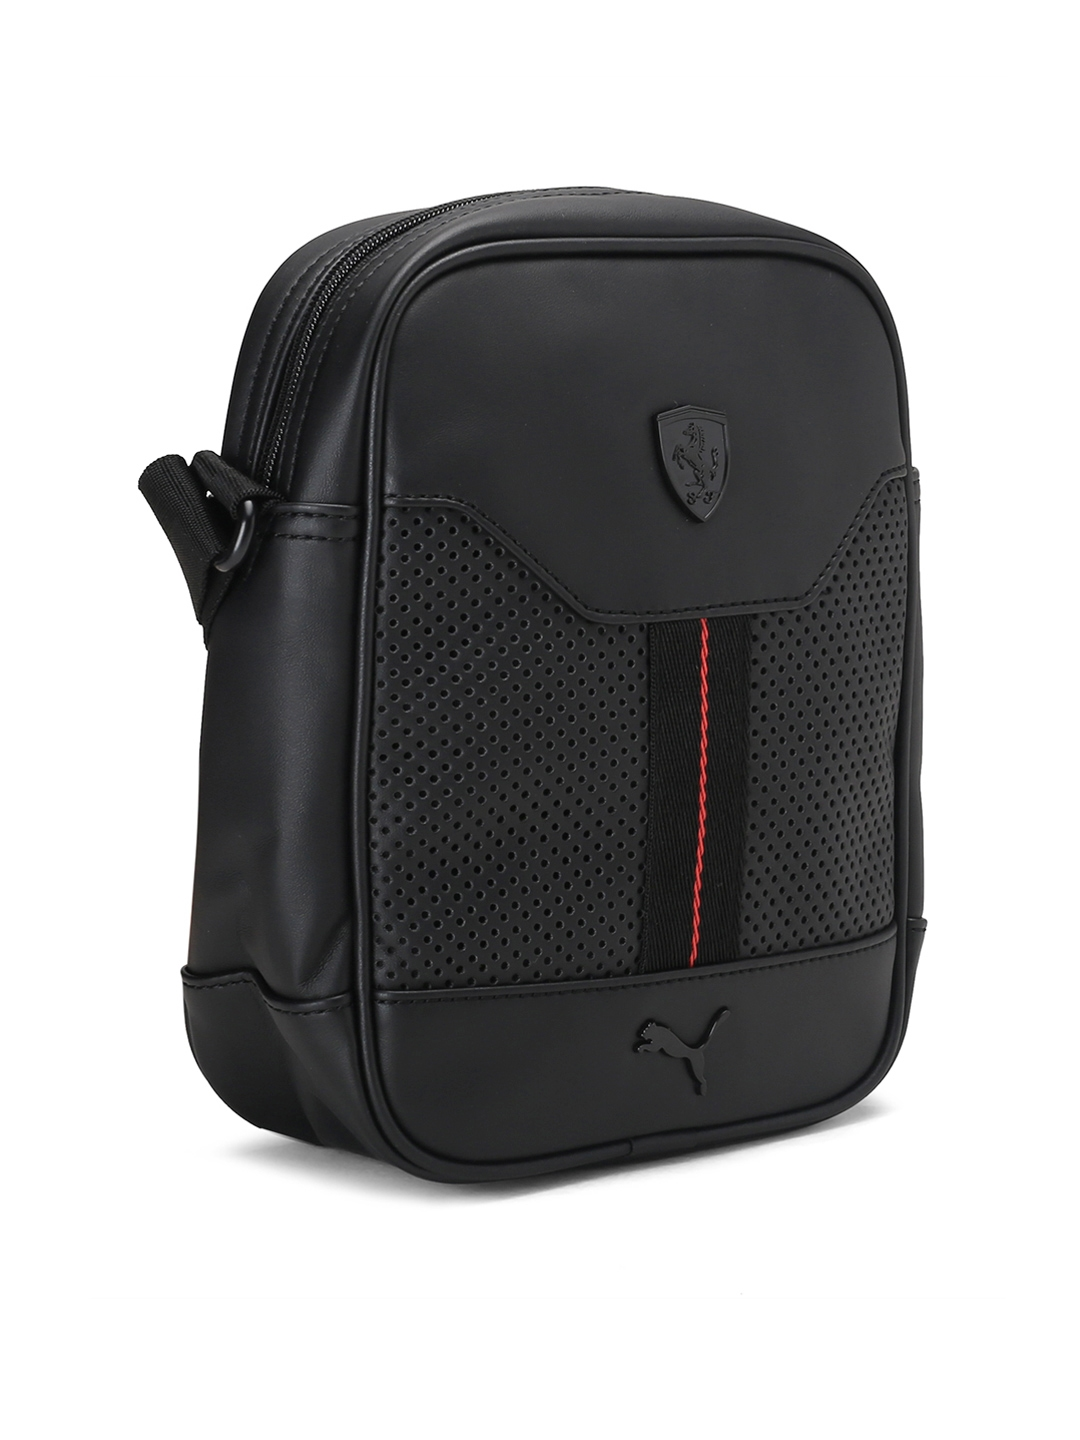 Buy Puma Unisex Black Solid Ferrari LS Portable Messenger Bag ... ebac82407dd55